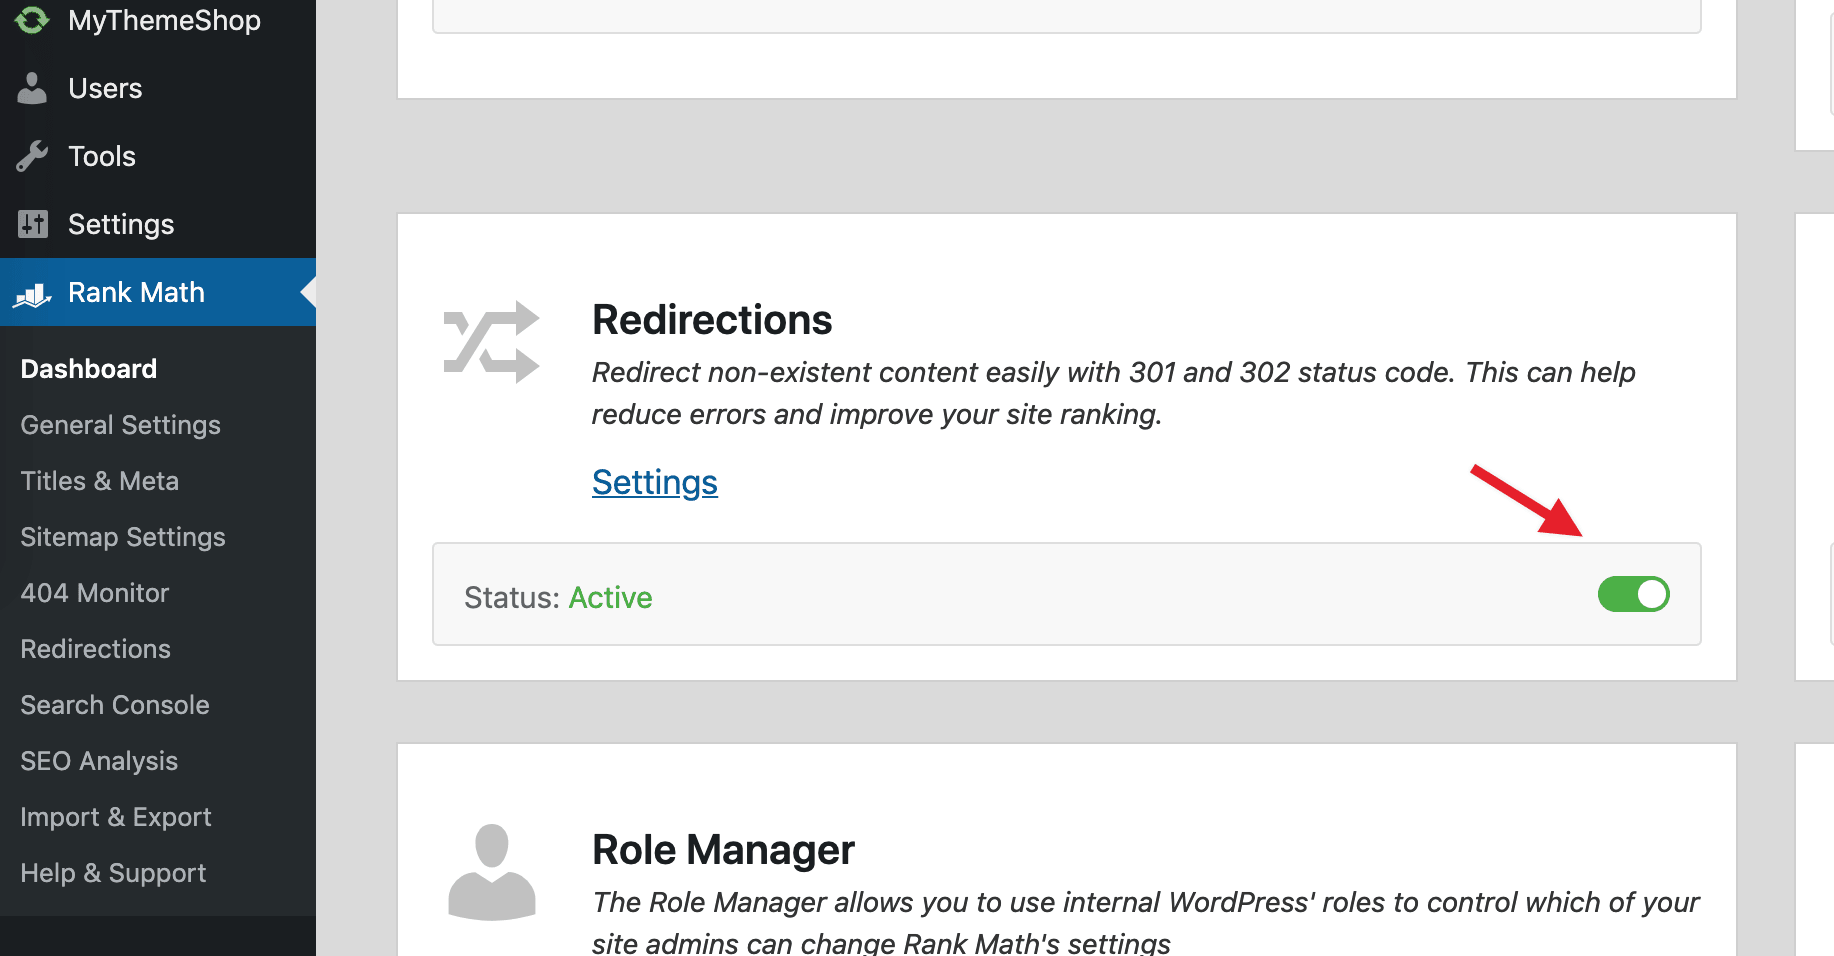 Disable Redirections